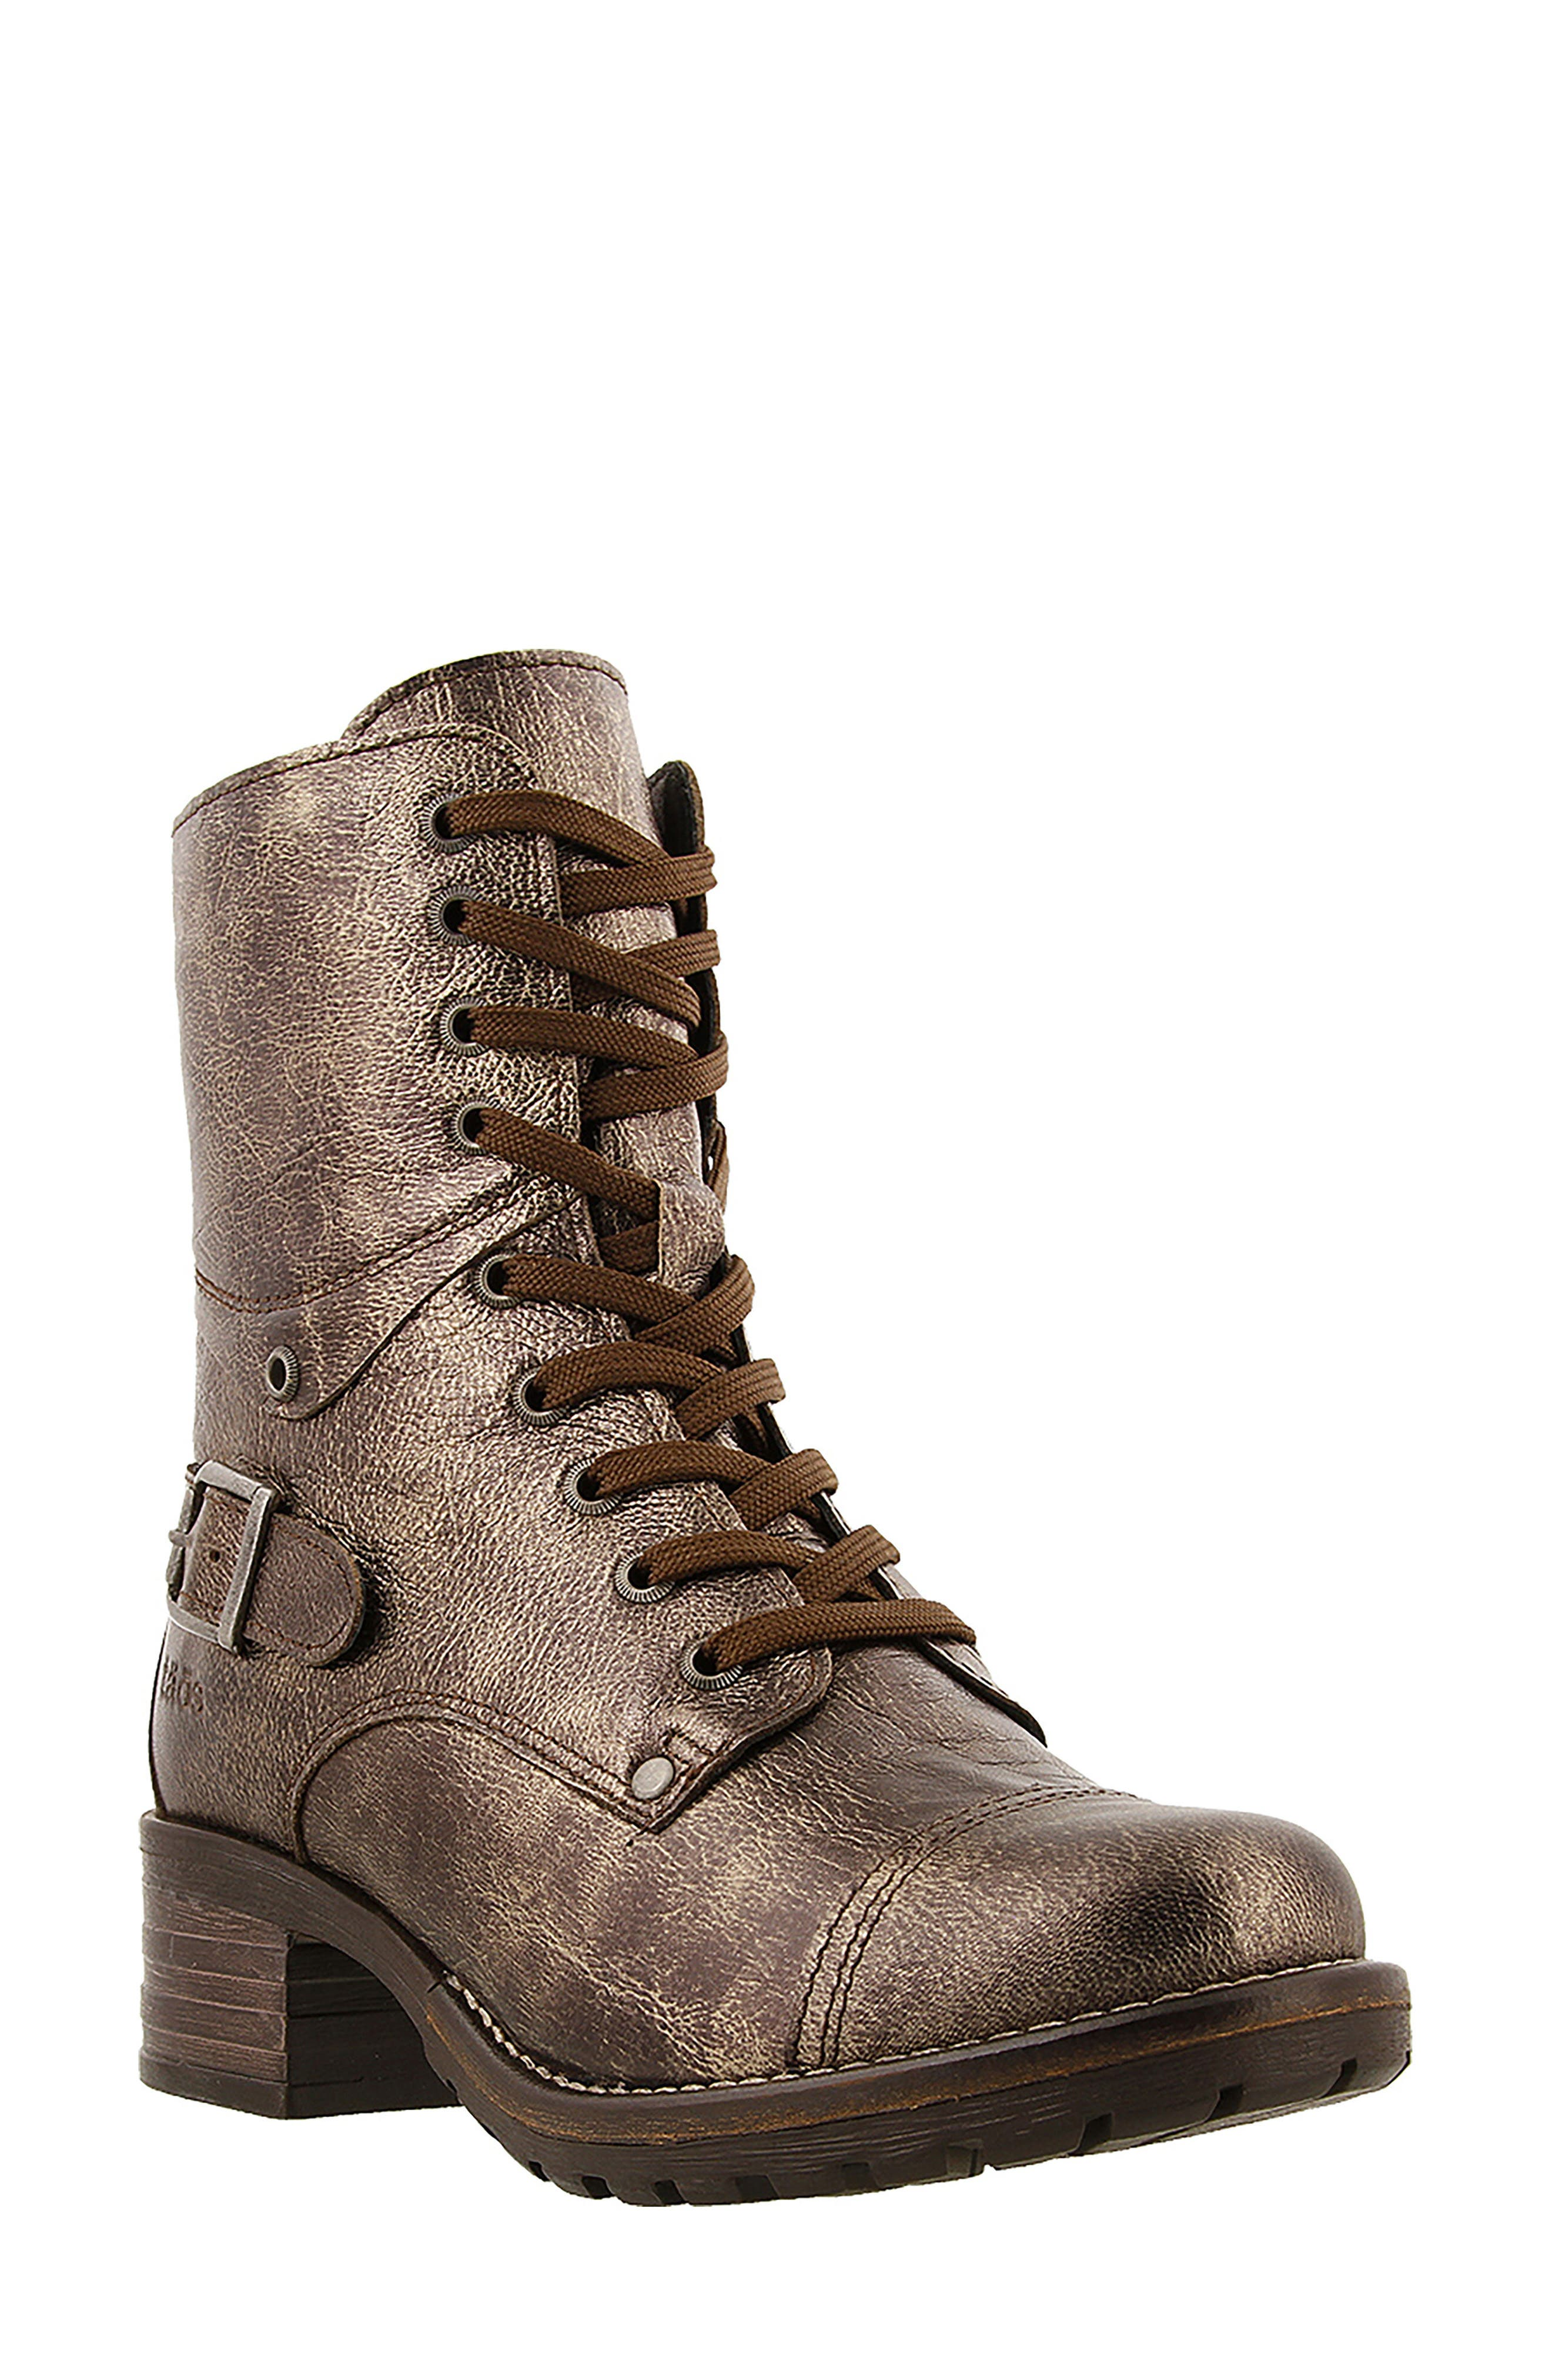 Crave Boot,                         Main,                         color, BRONZE LEATHER